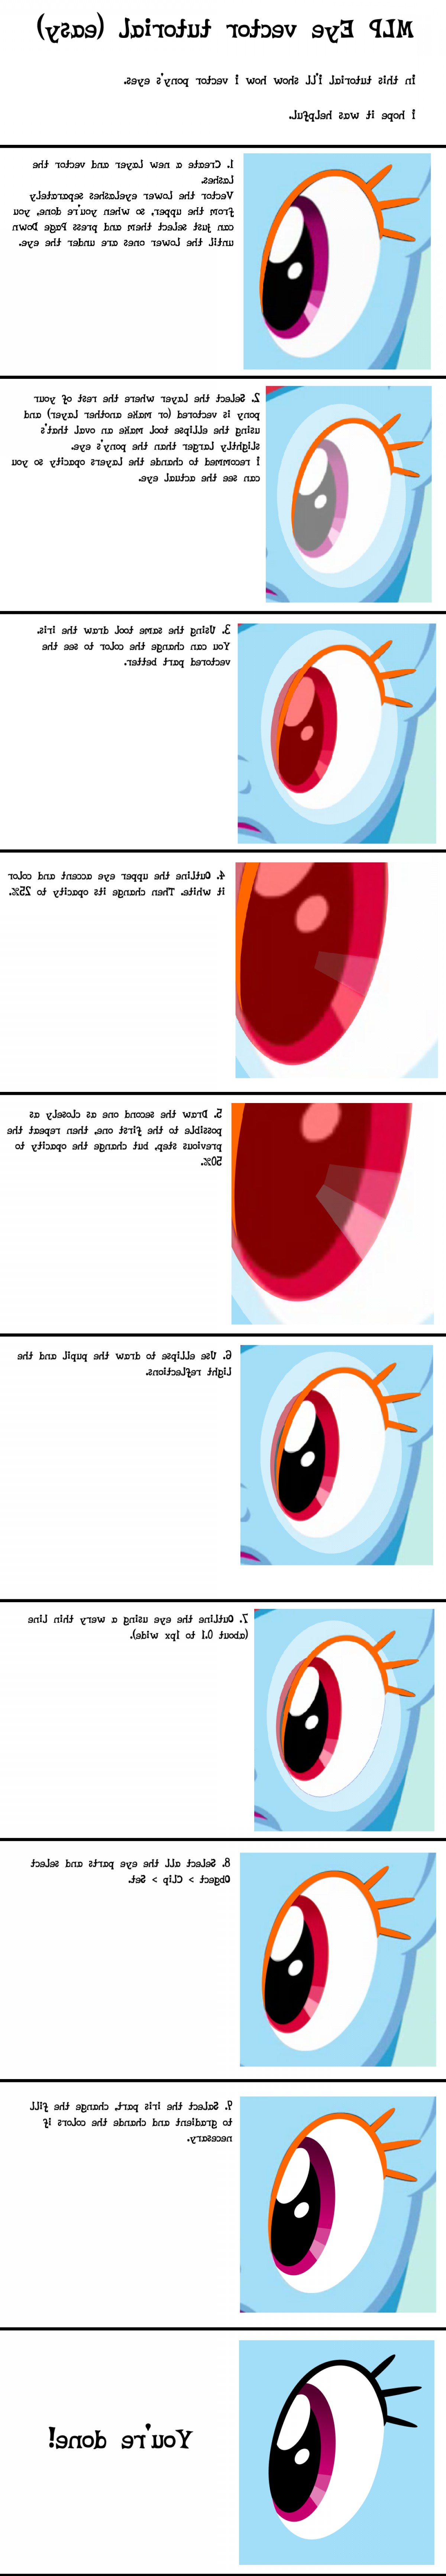 Use An Image To Vector Inkscape: Mlp Pony Eye Vector Tutorial Inkscape